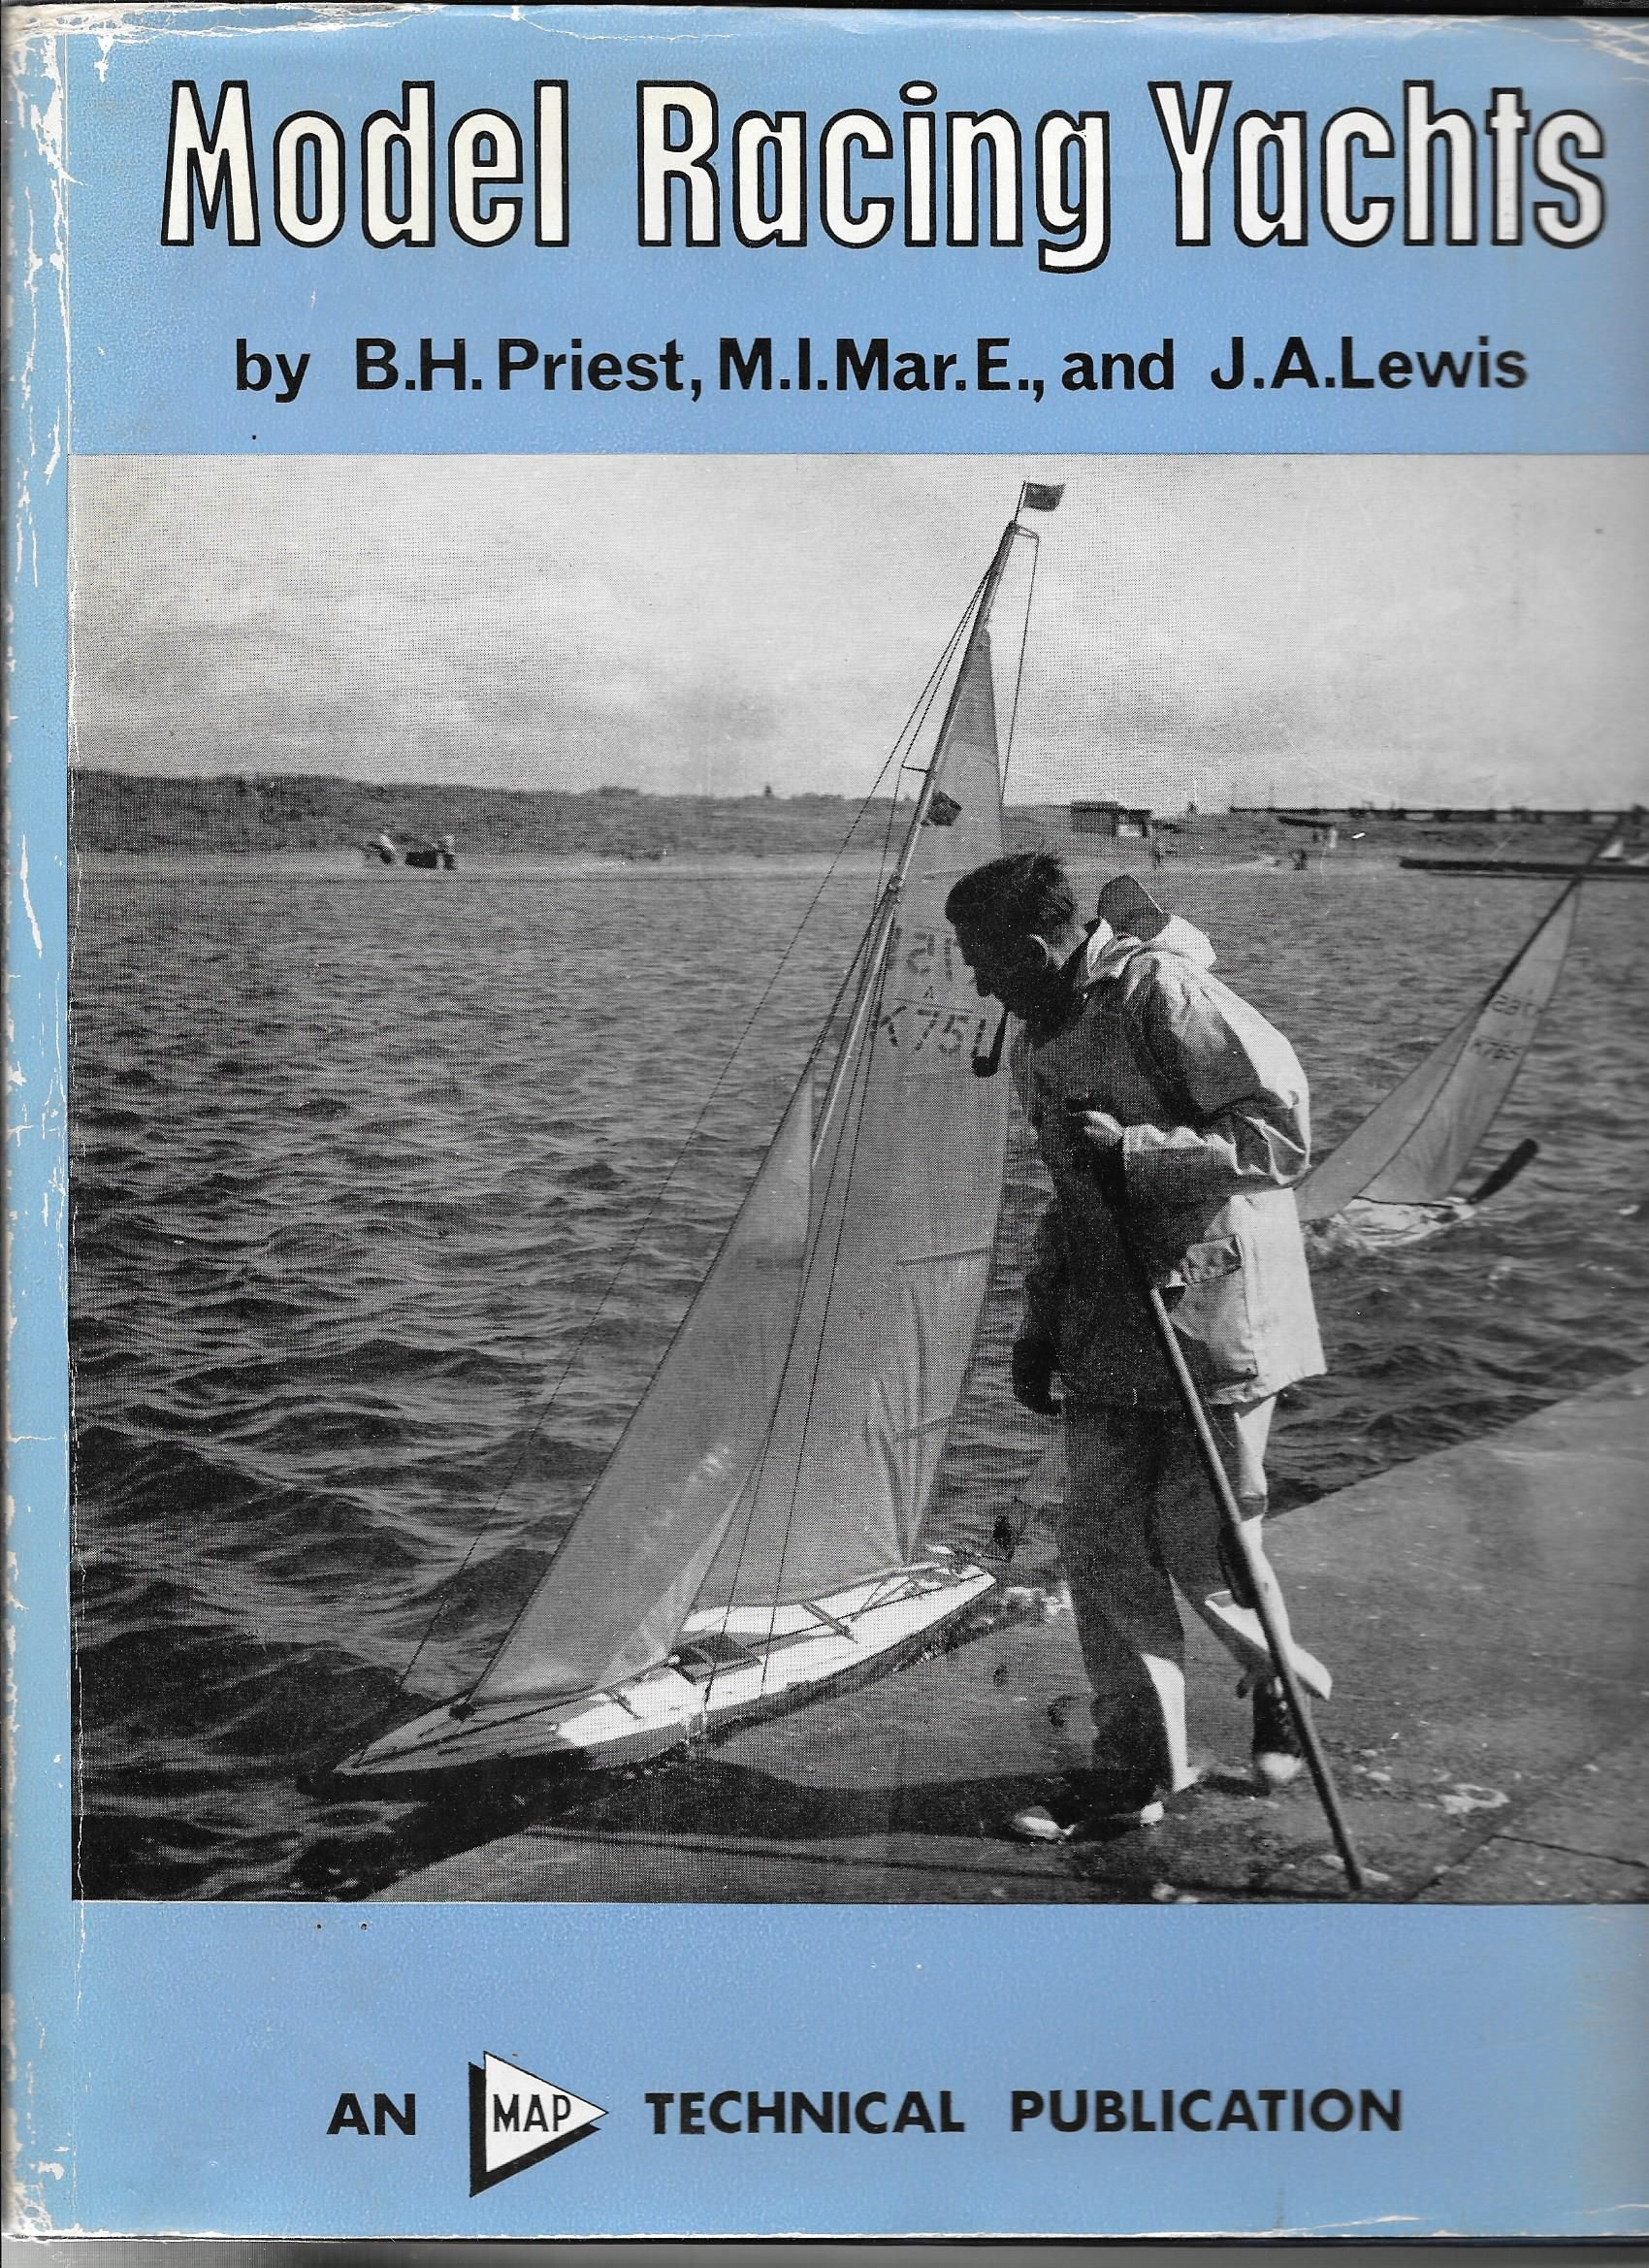 Model Racing Yachts by Priest and Lewis  Some interesting theory on